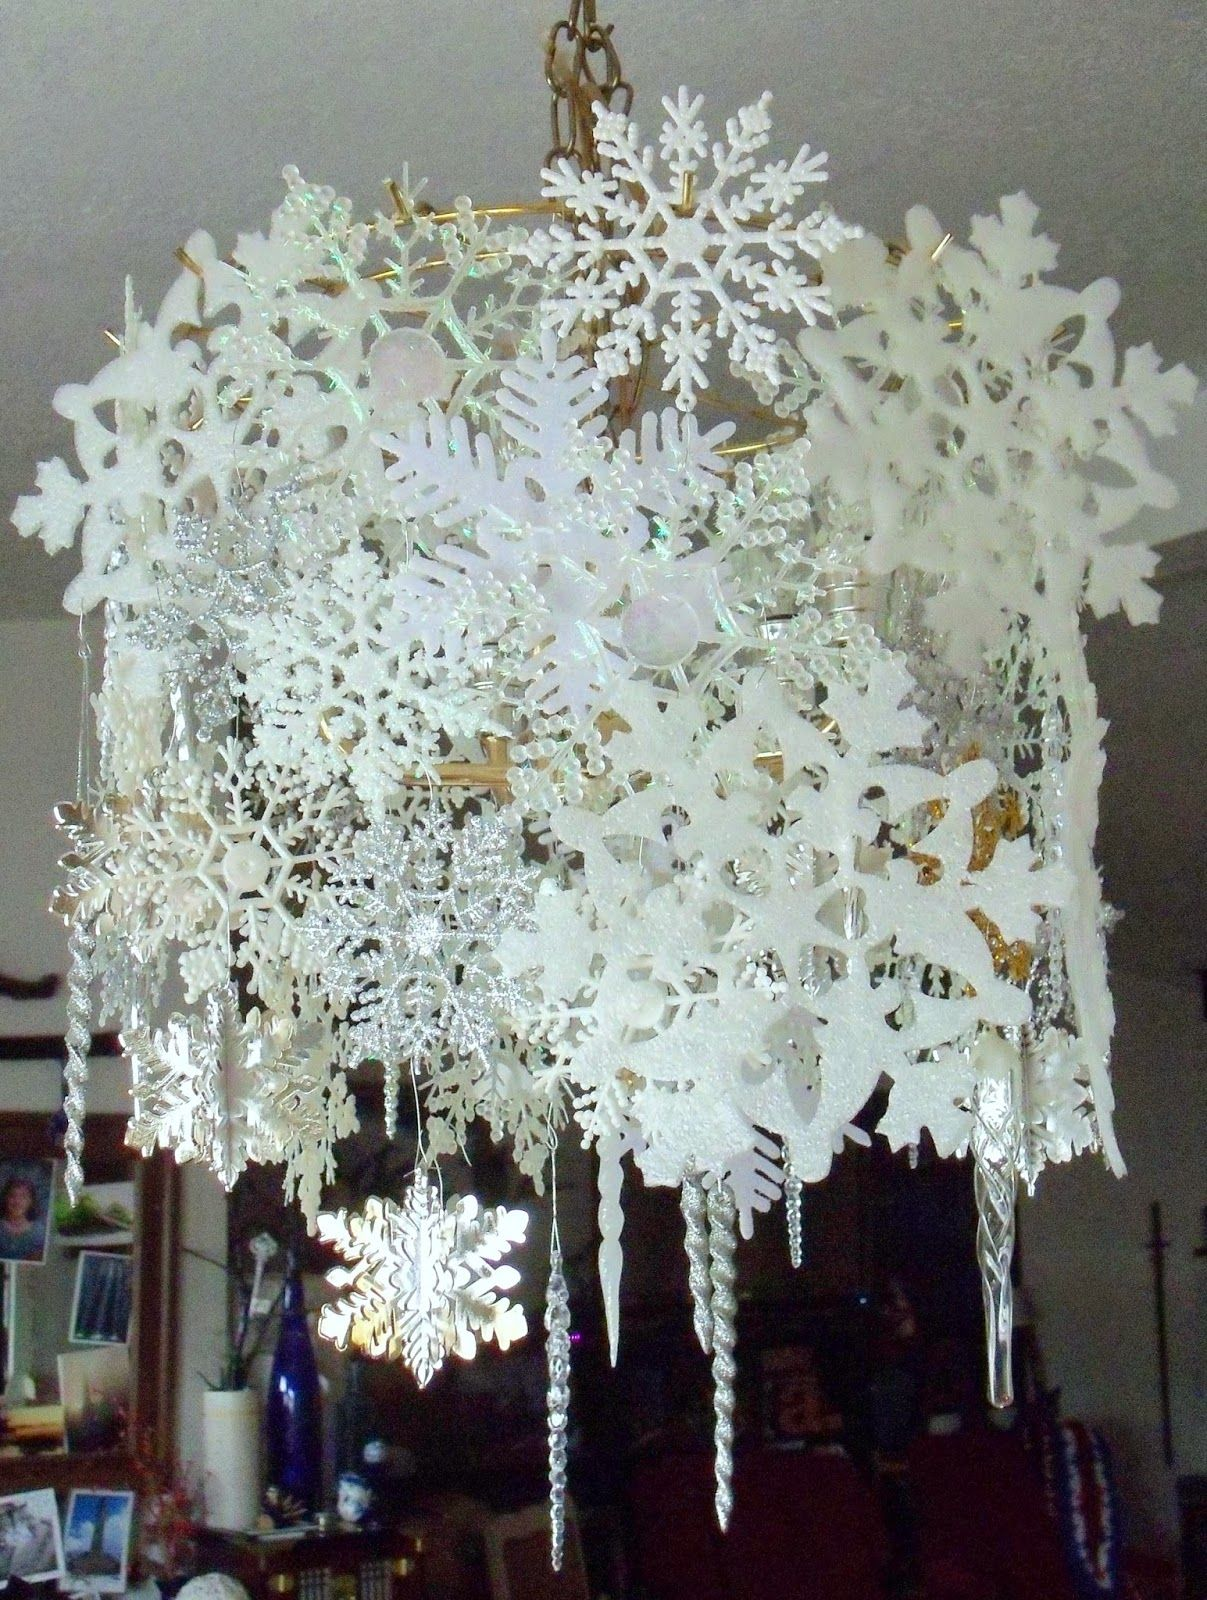 Make the best of things glittery silvery snowflake chandelier diy make the best of things glittery silvery snowflake chandelier diy christmas chandelier decorchandelier arubaitofo Image collections